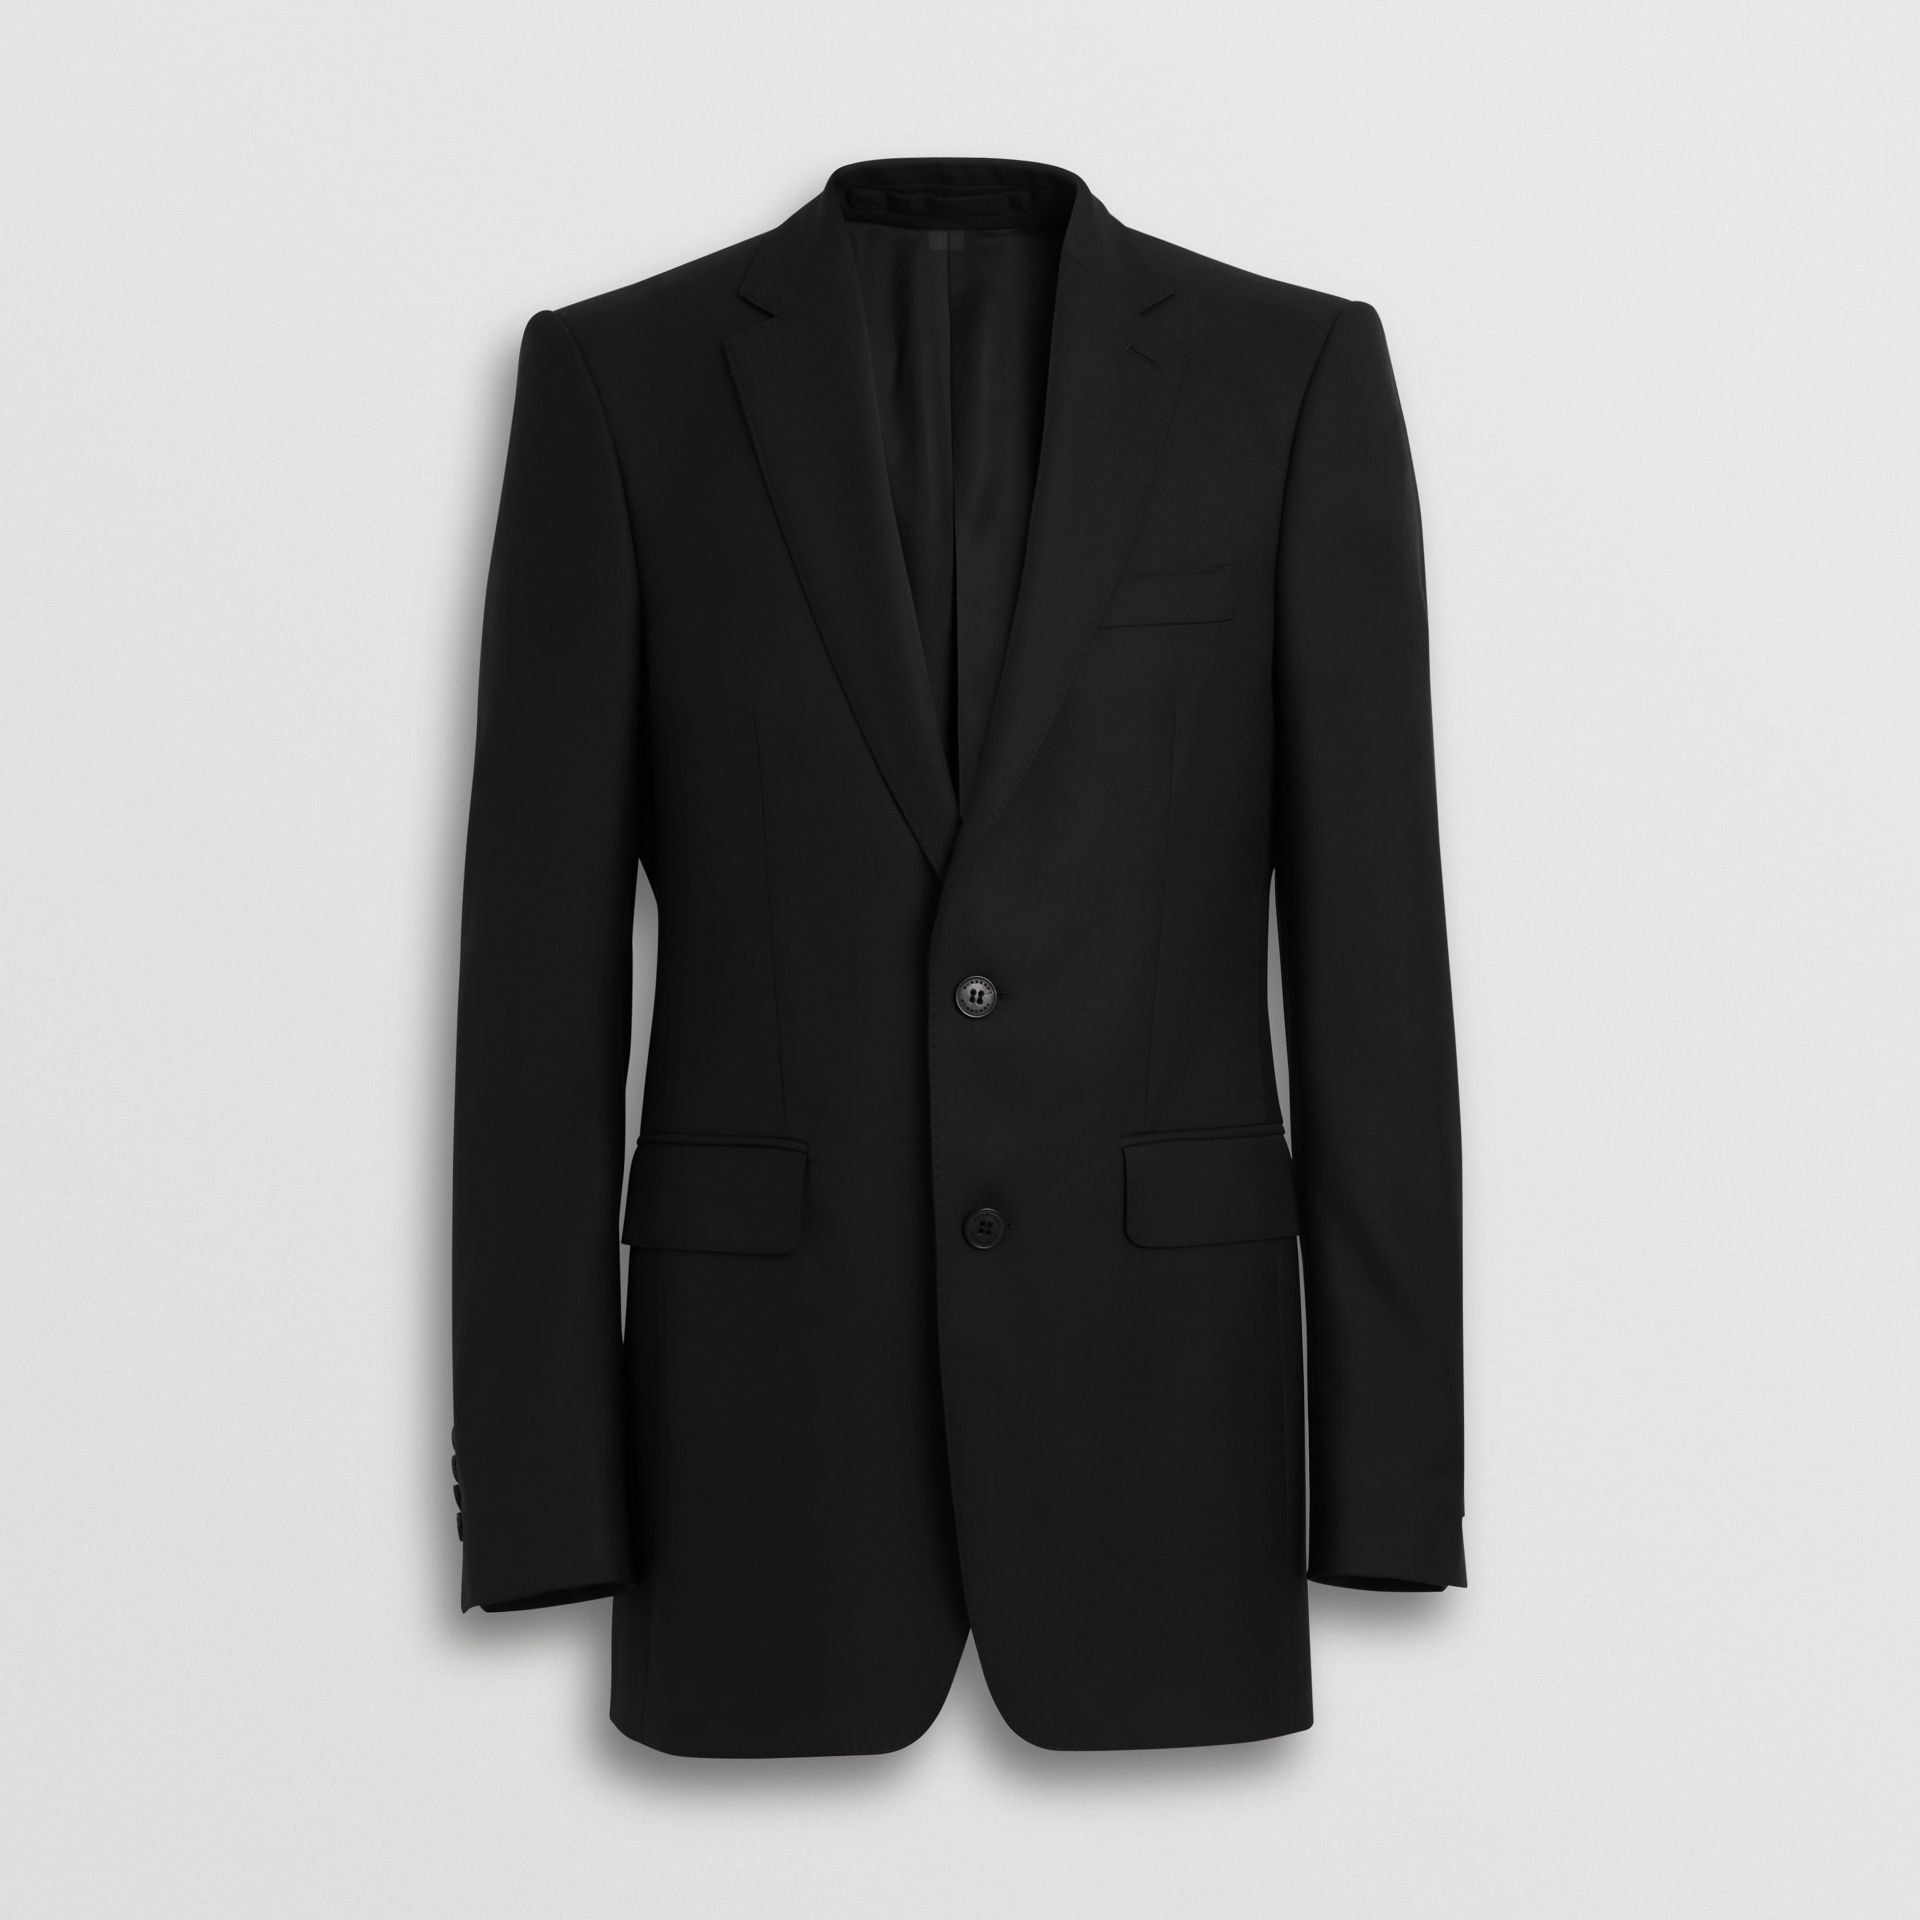 Classic Fit Wool Twill Suit in Black - Men | Burberry United States - gallery image 3